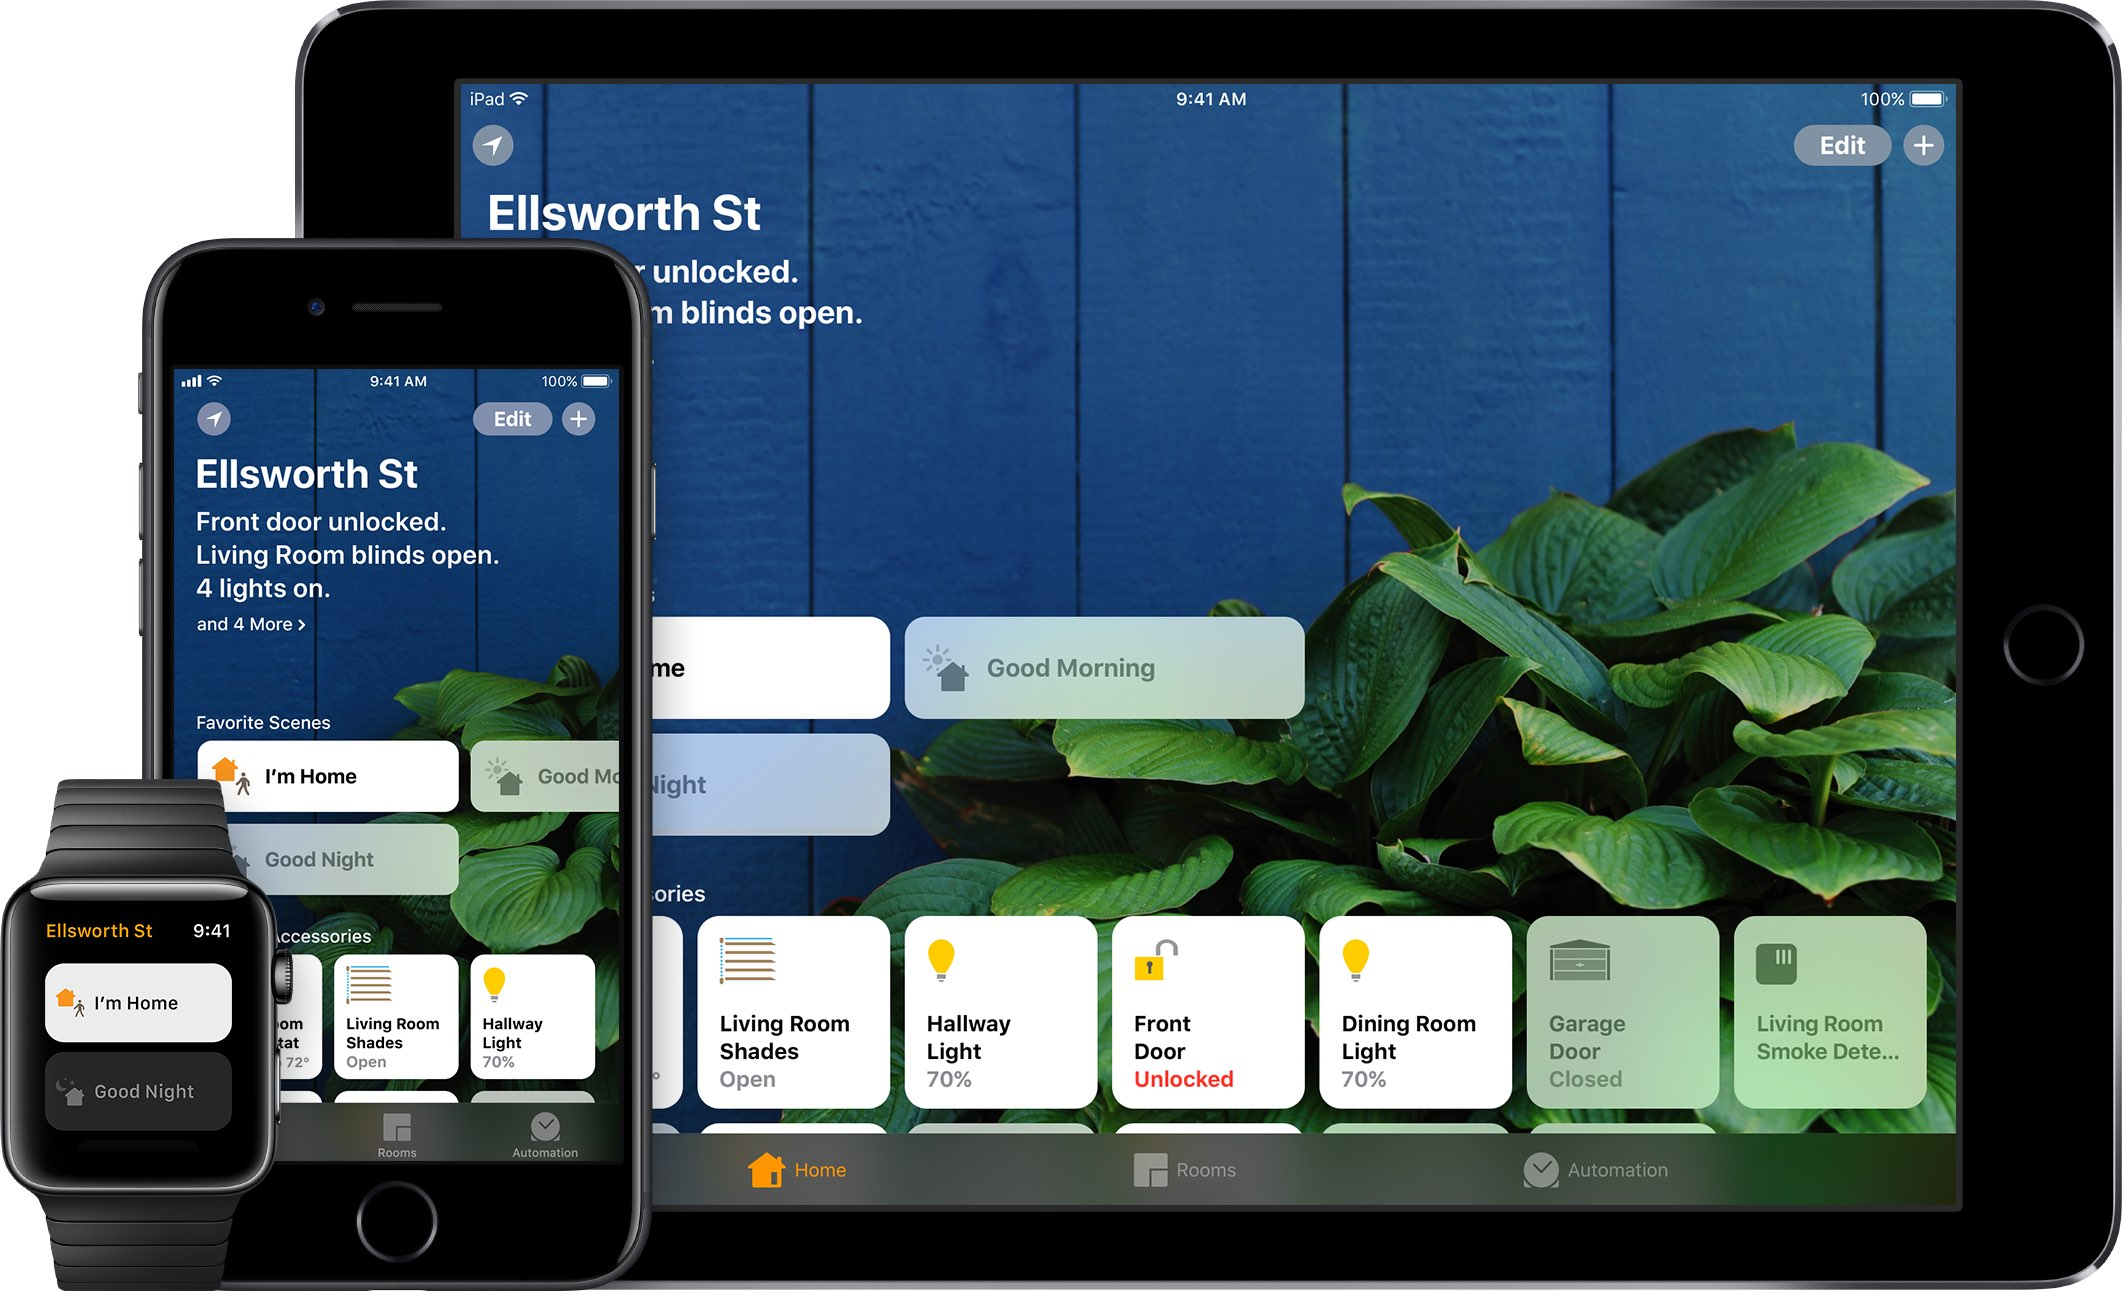 HomeKit gains easier setup with NFC/QR Codes, improved latency